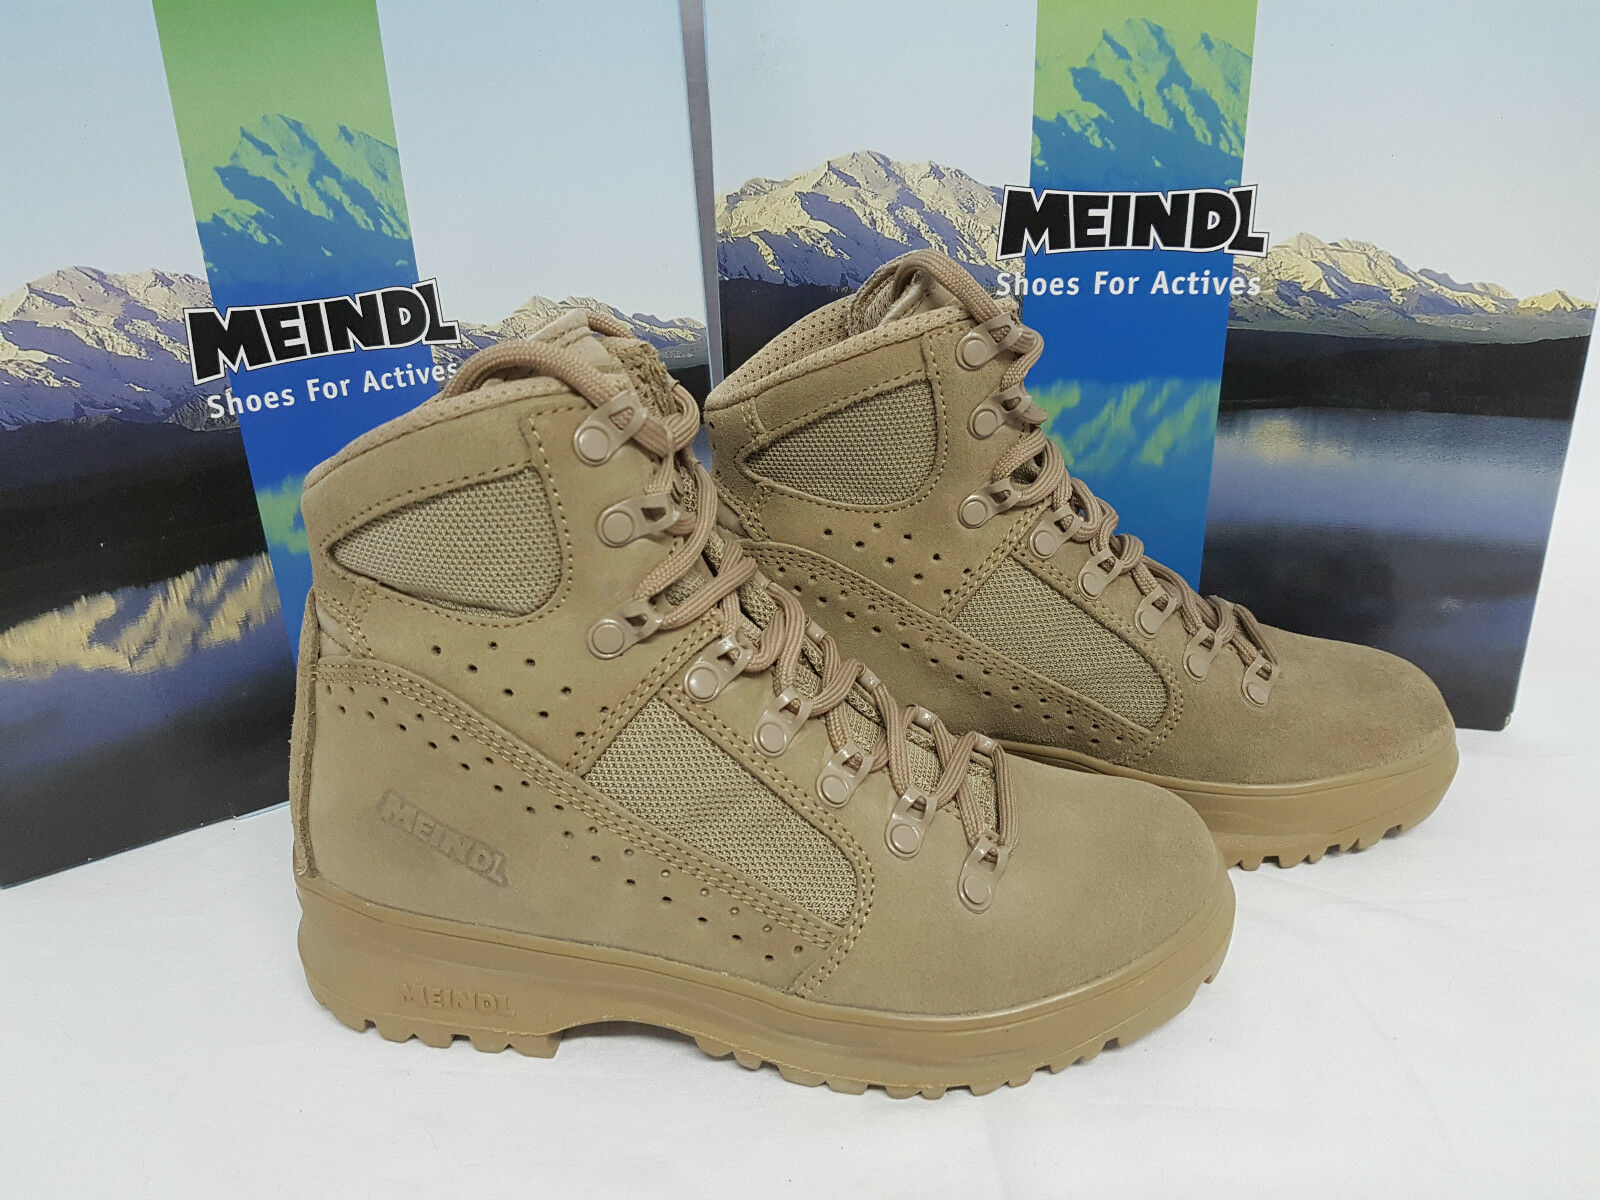 Neu  Meindl Wanderschuhe grösse 35,5   3651-06 Desert New Genuine (230)  100% genuine counter guarantee